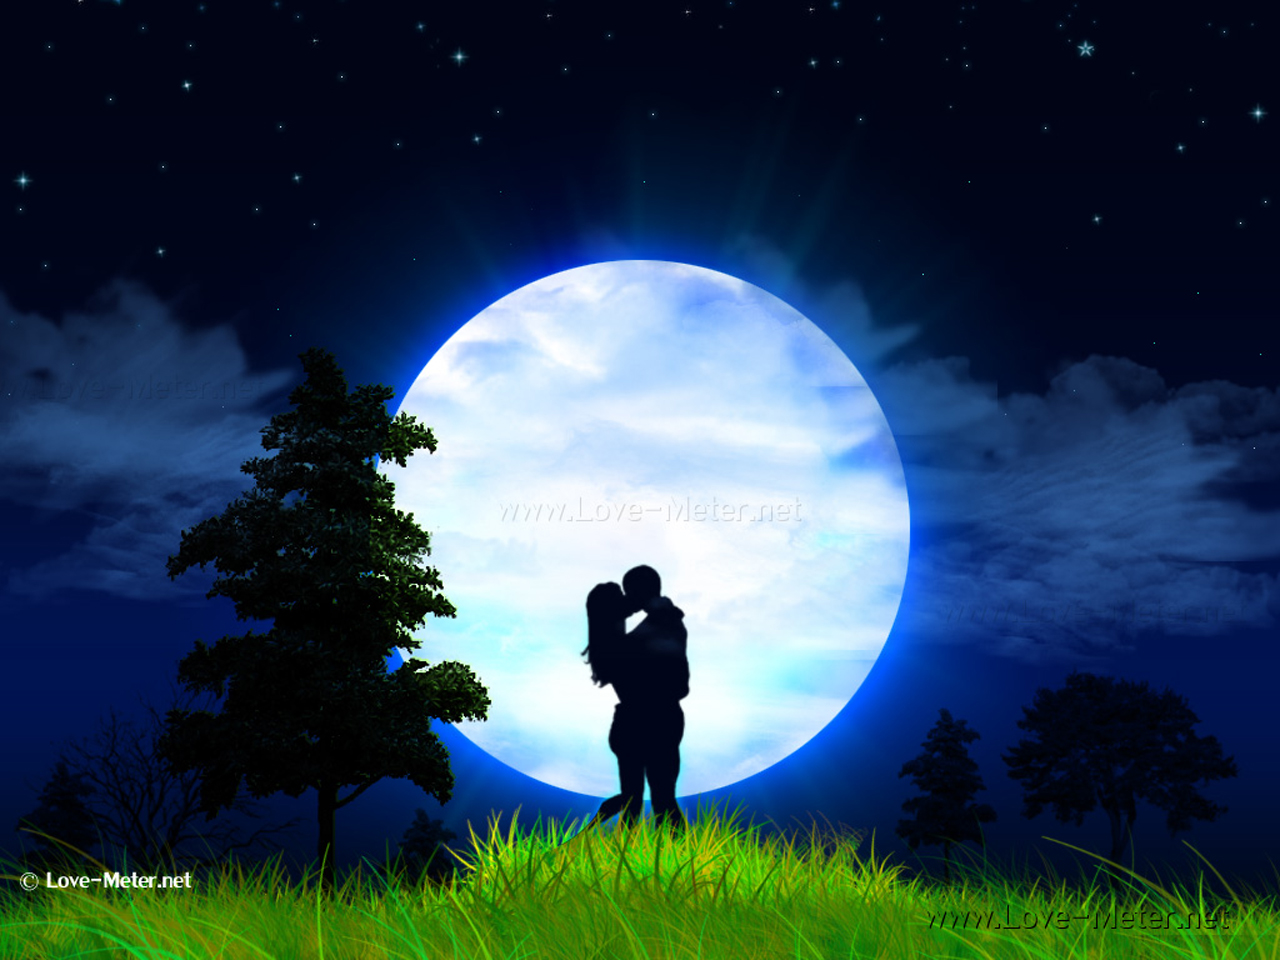 Wallpaper Love Quotes couple Sad Free Download Taglog In Hindi For Facebook Hd For Facebook ...